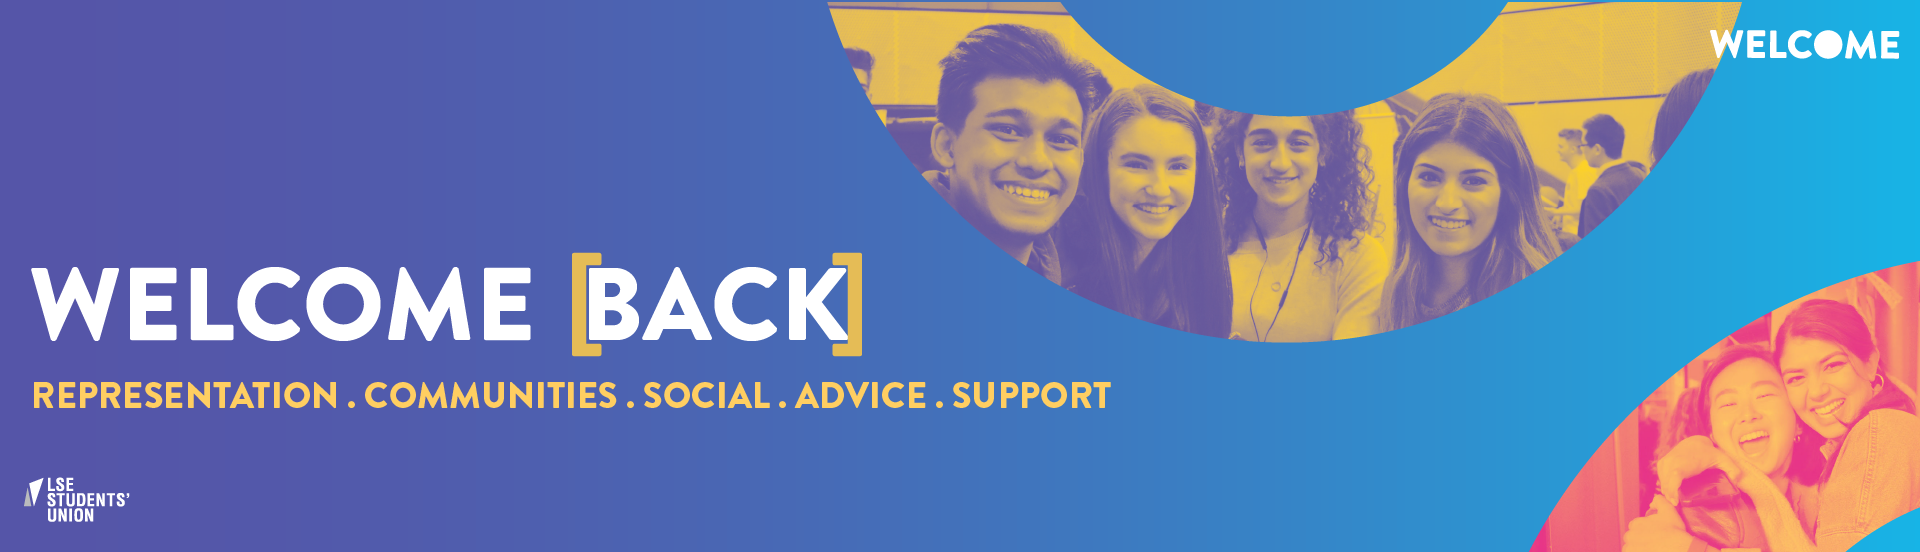 Welcome Back - Find Out More